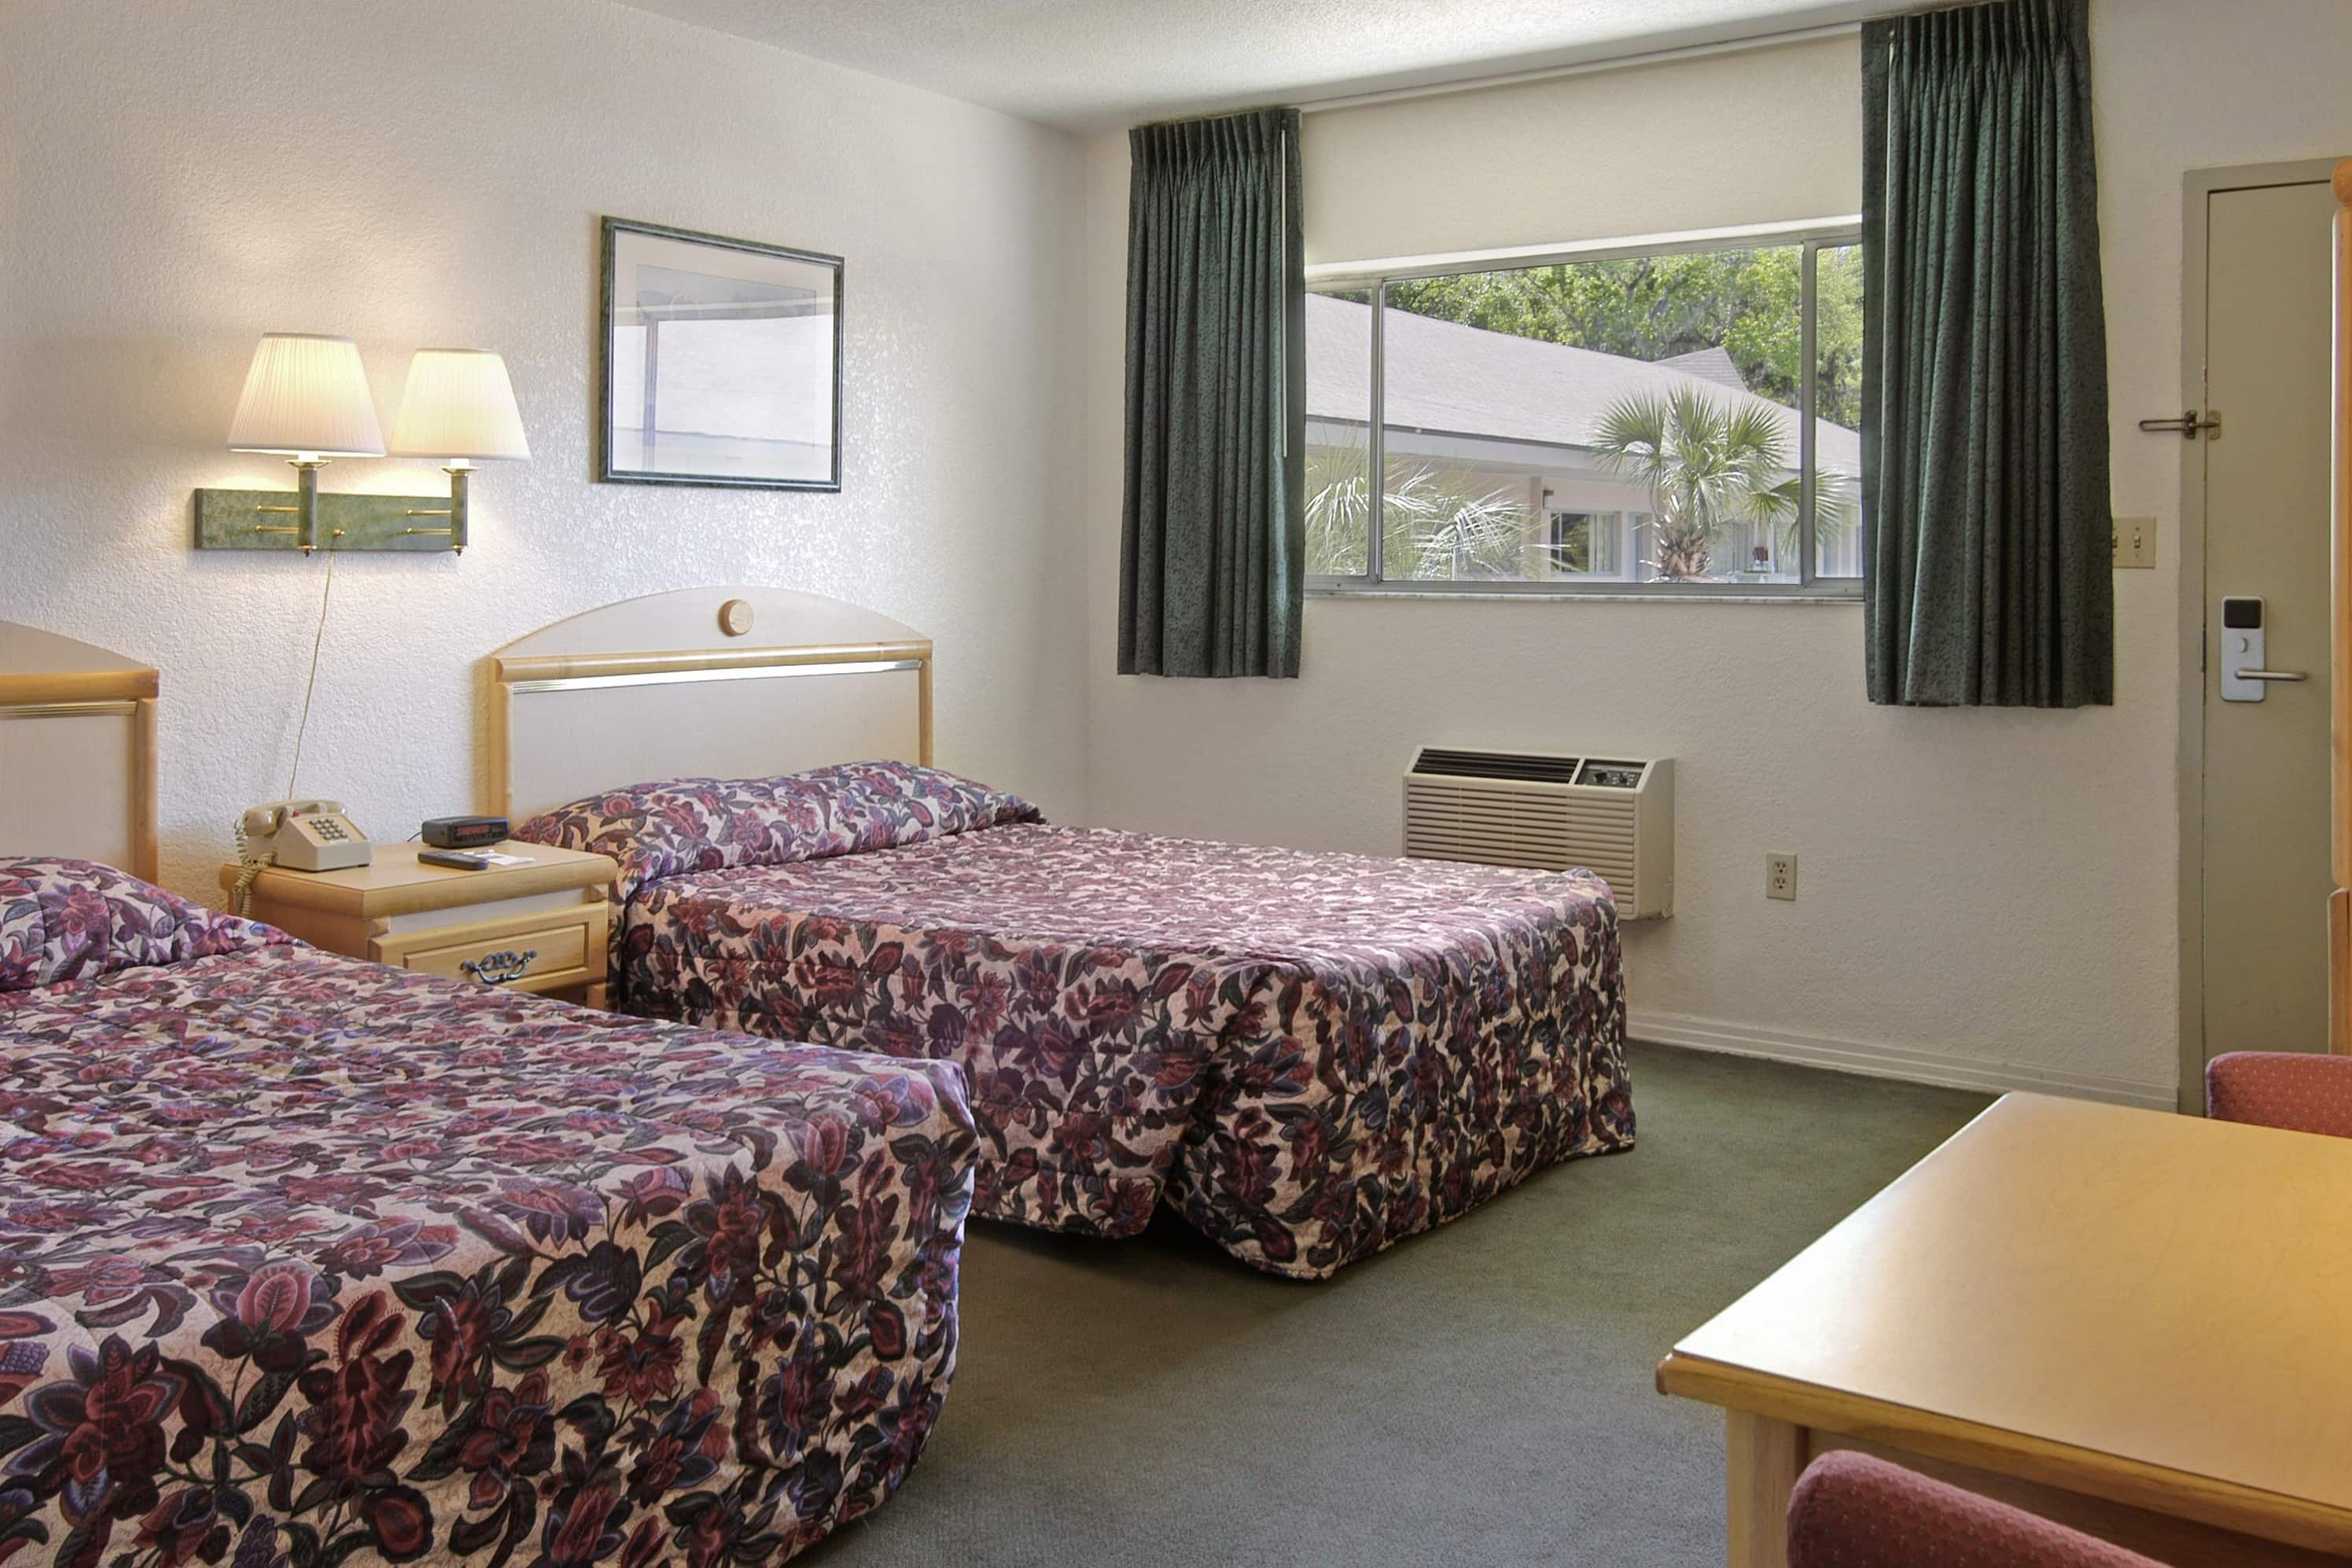 Guest room at the Days Inn Gainesville University in Gainesville, Florida